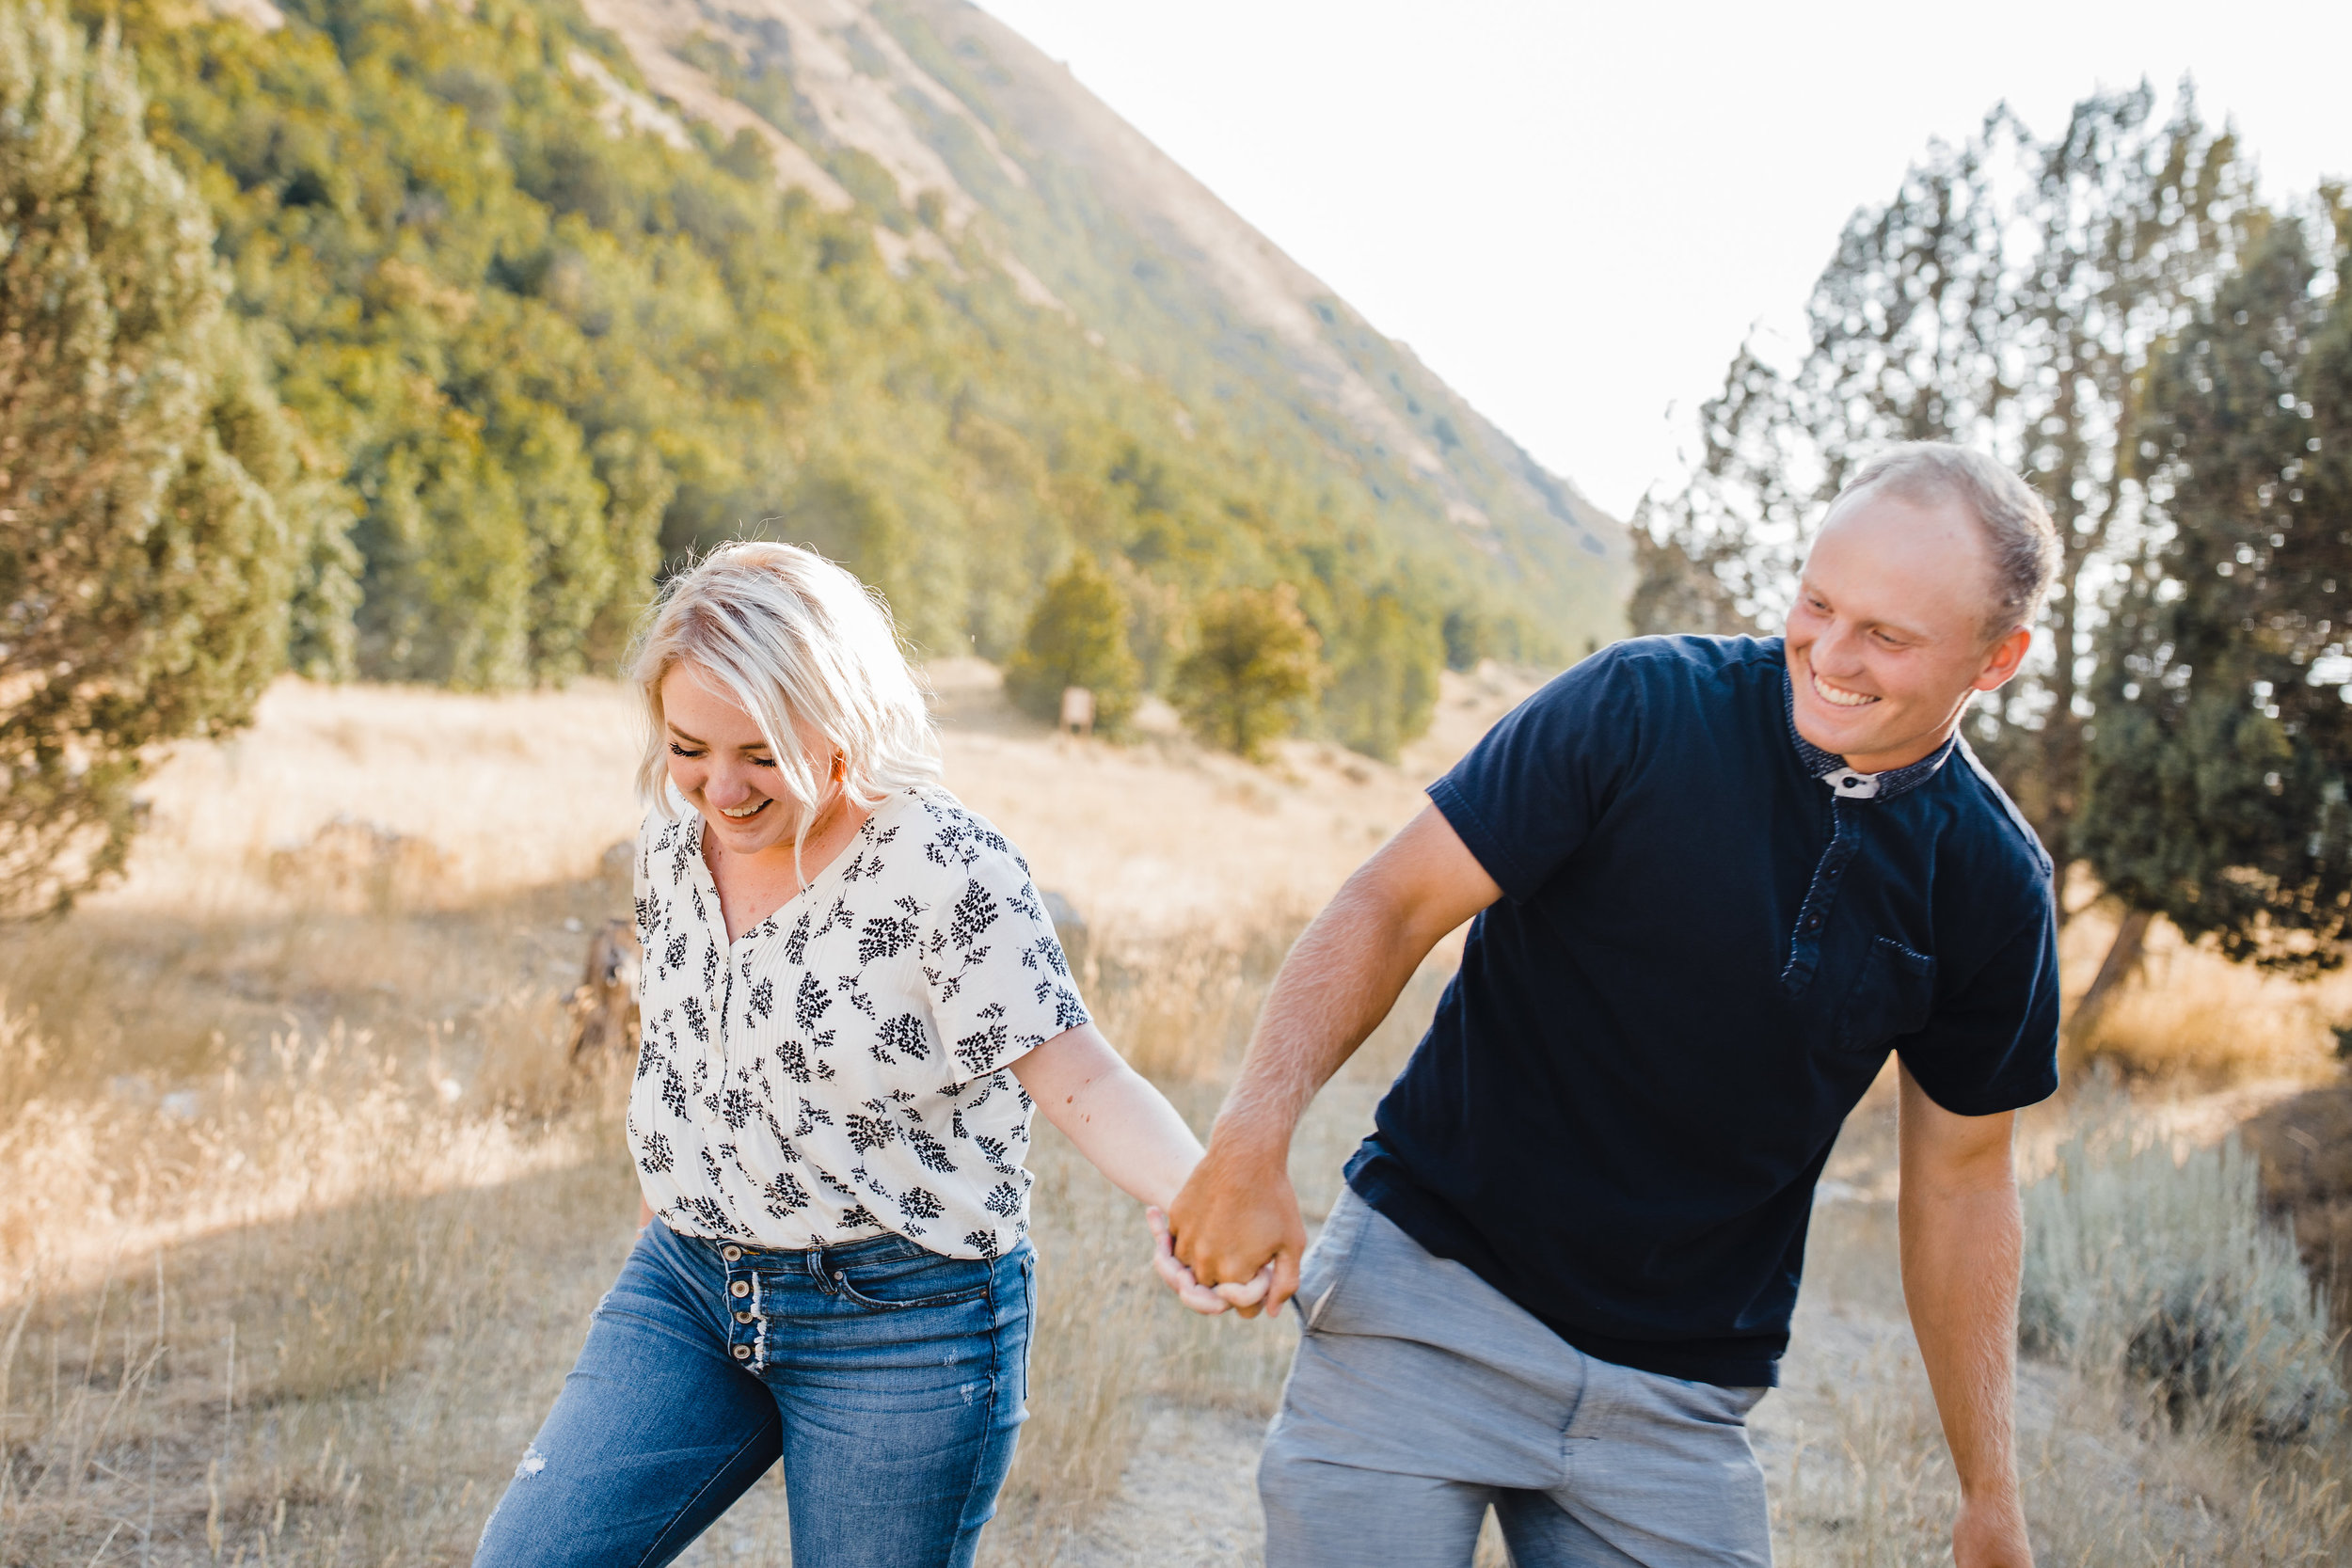 cache valley professional couples photographer laughing holding hands walking mountain backdrop